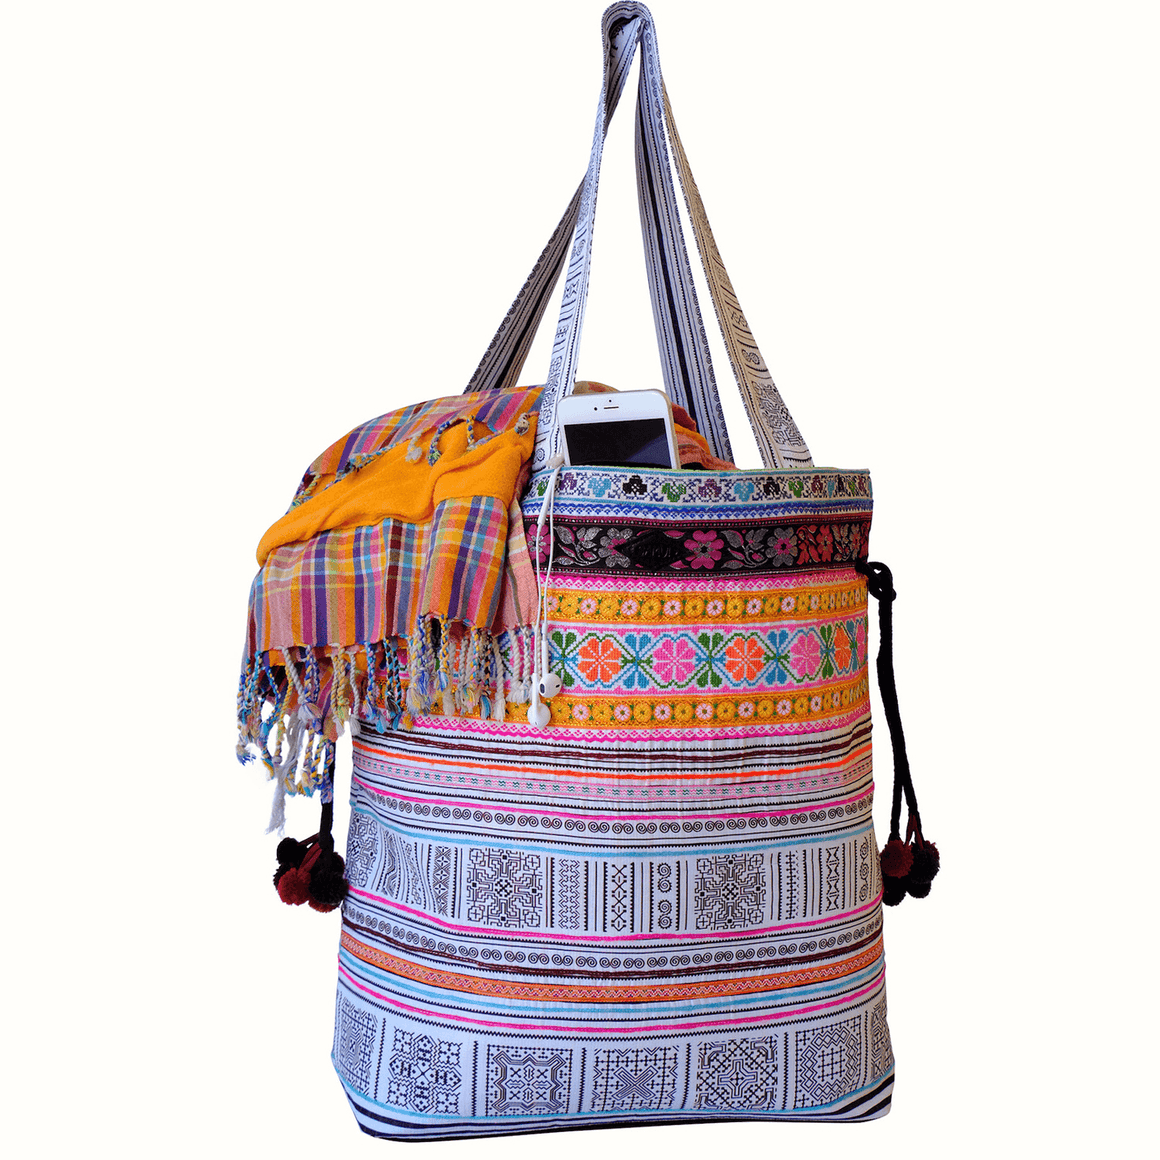 Samui Bags Coral Reef Weekender Bag Handmade Thai Bag